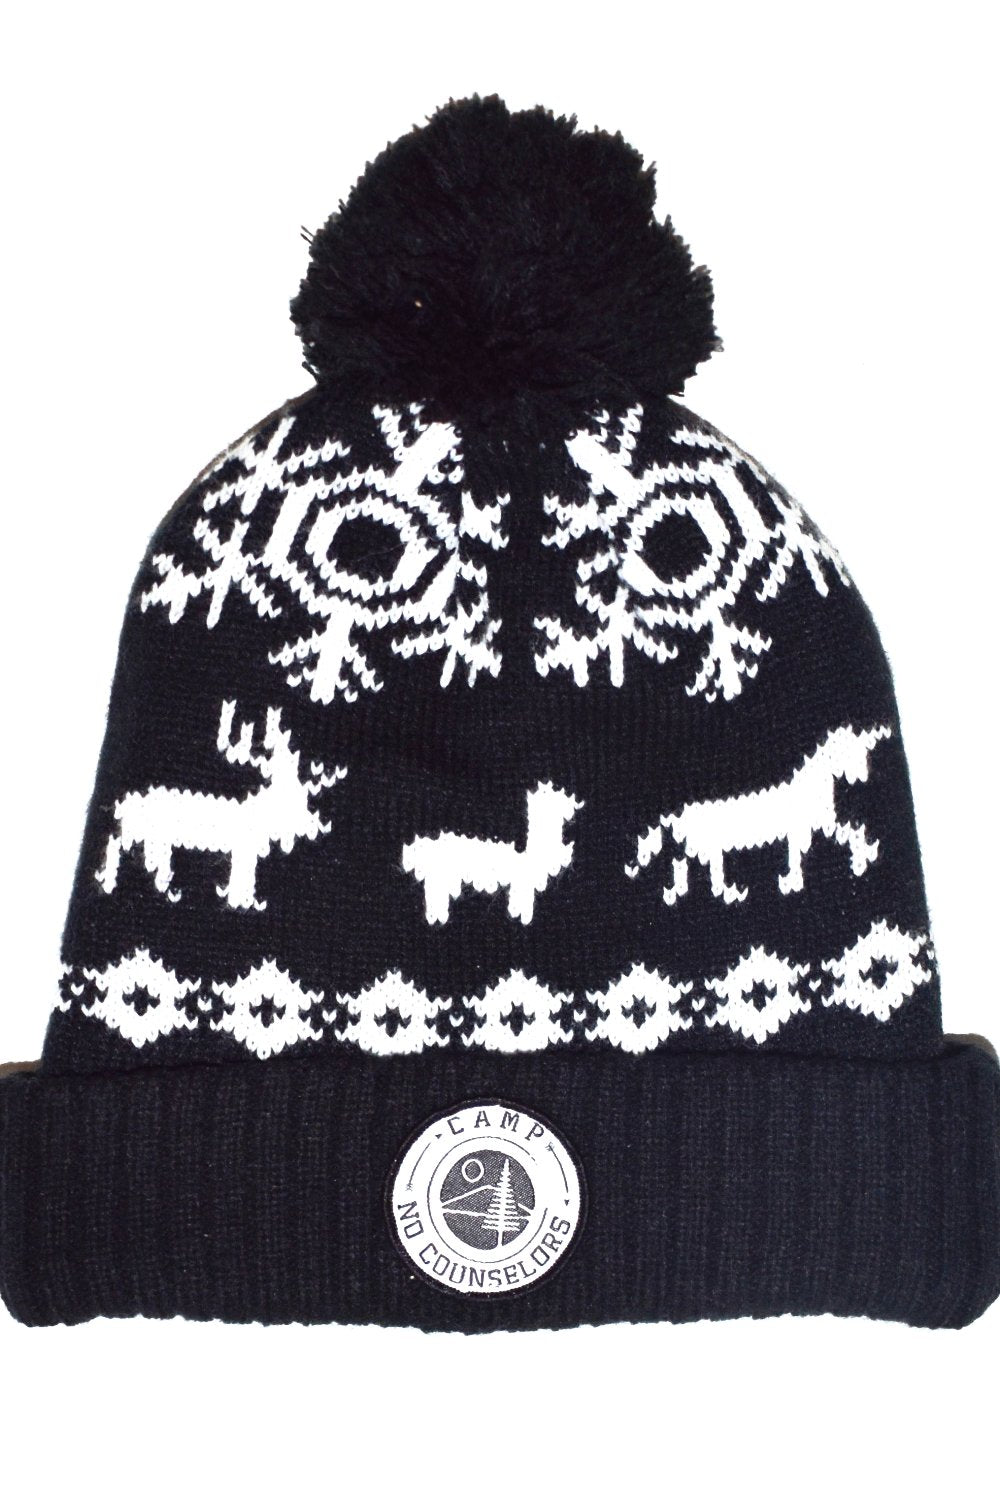 Moose, Alpaca Winter Hat